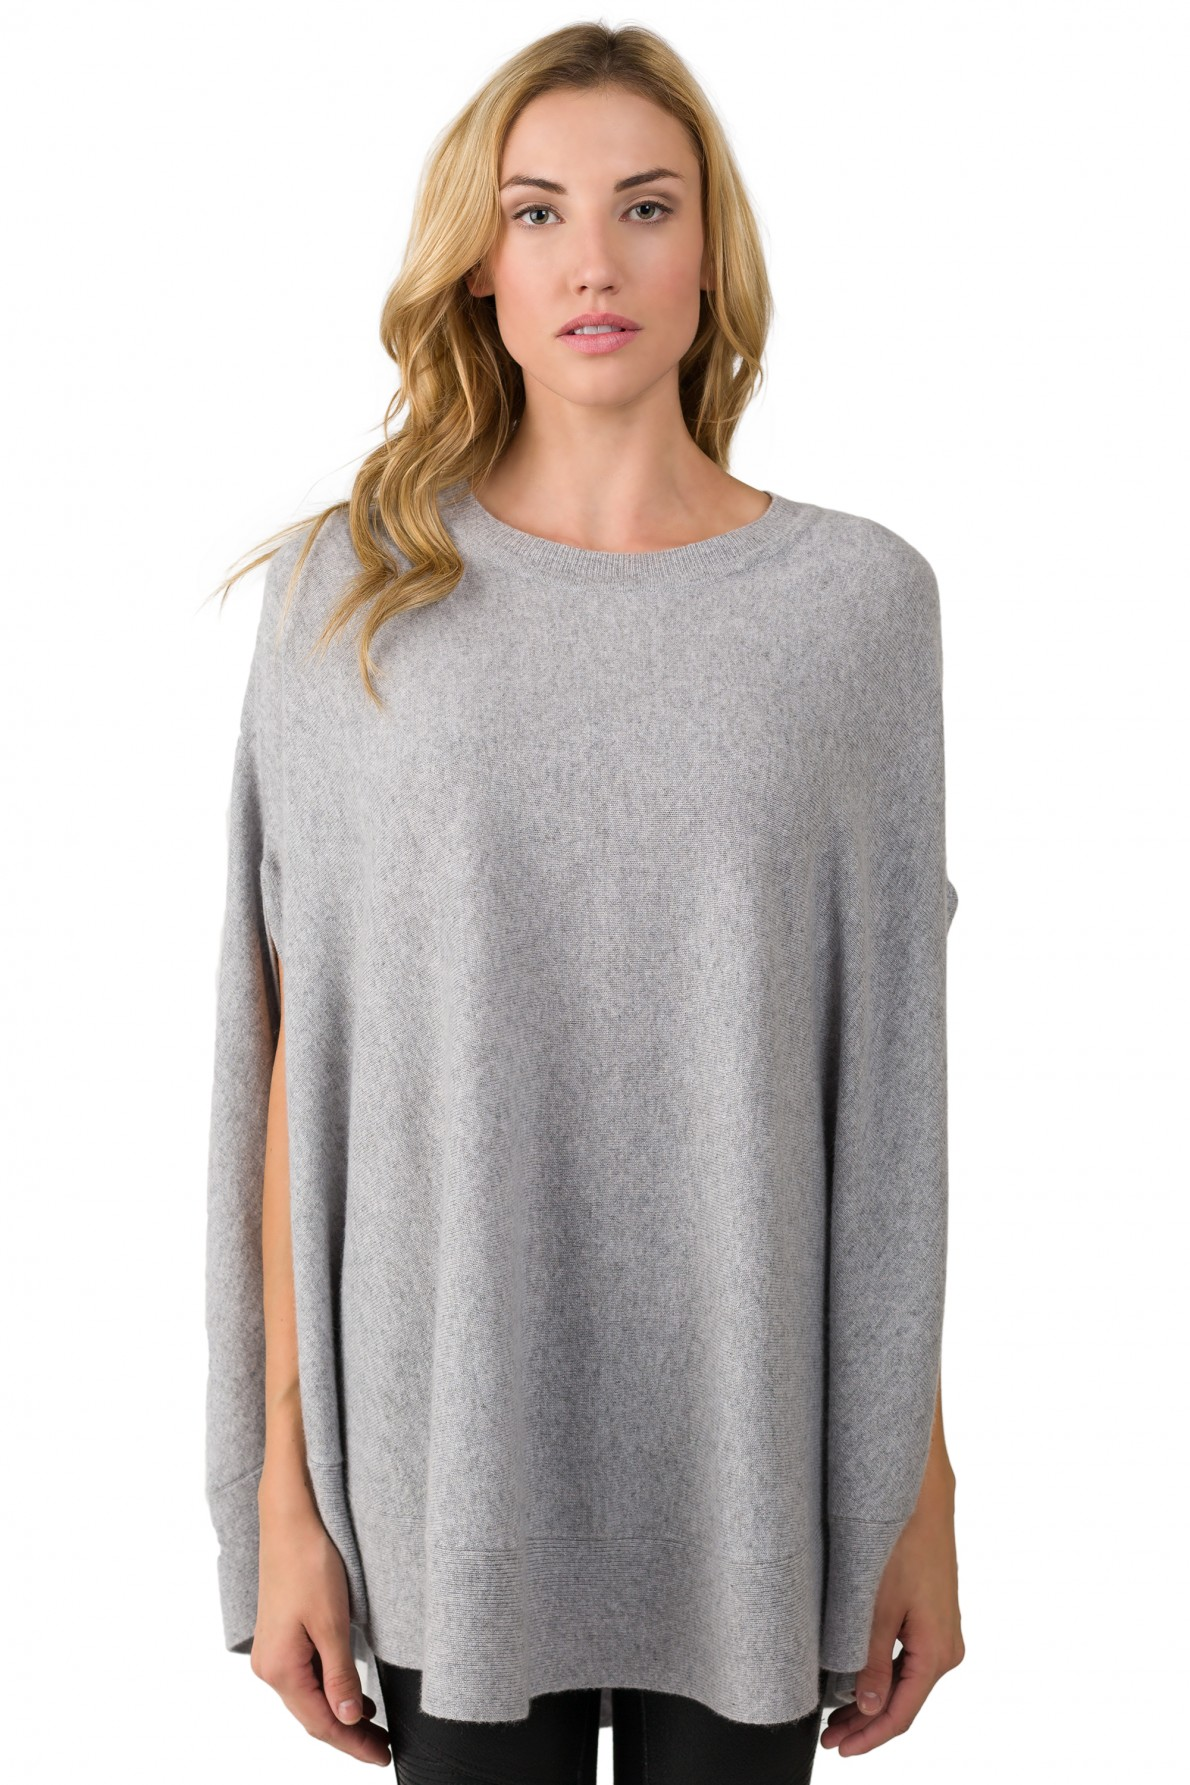 gray cashmere oversized laid-back poncho sweater front view bmgaccu